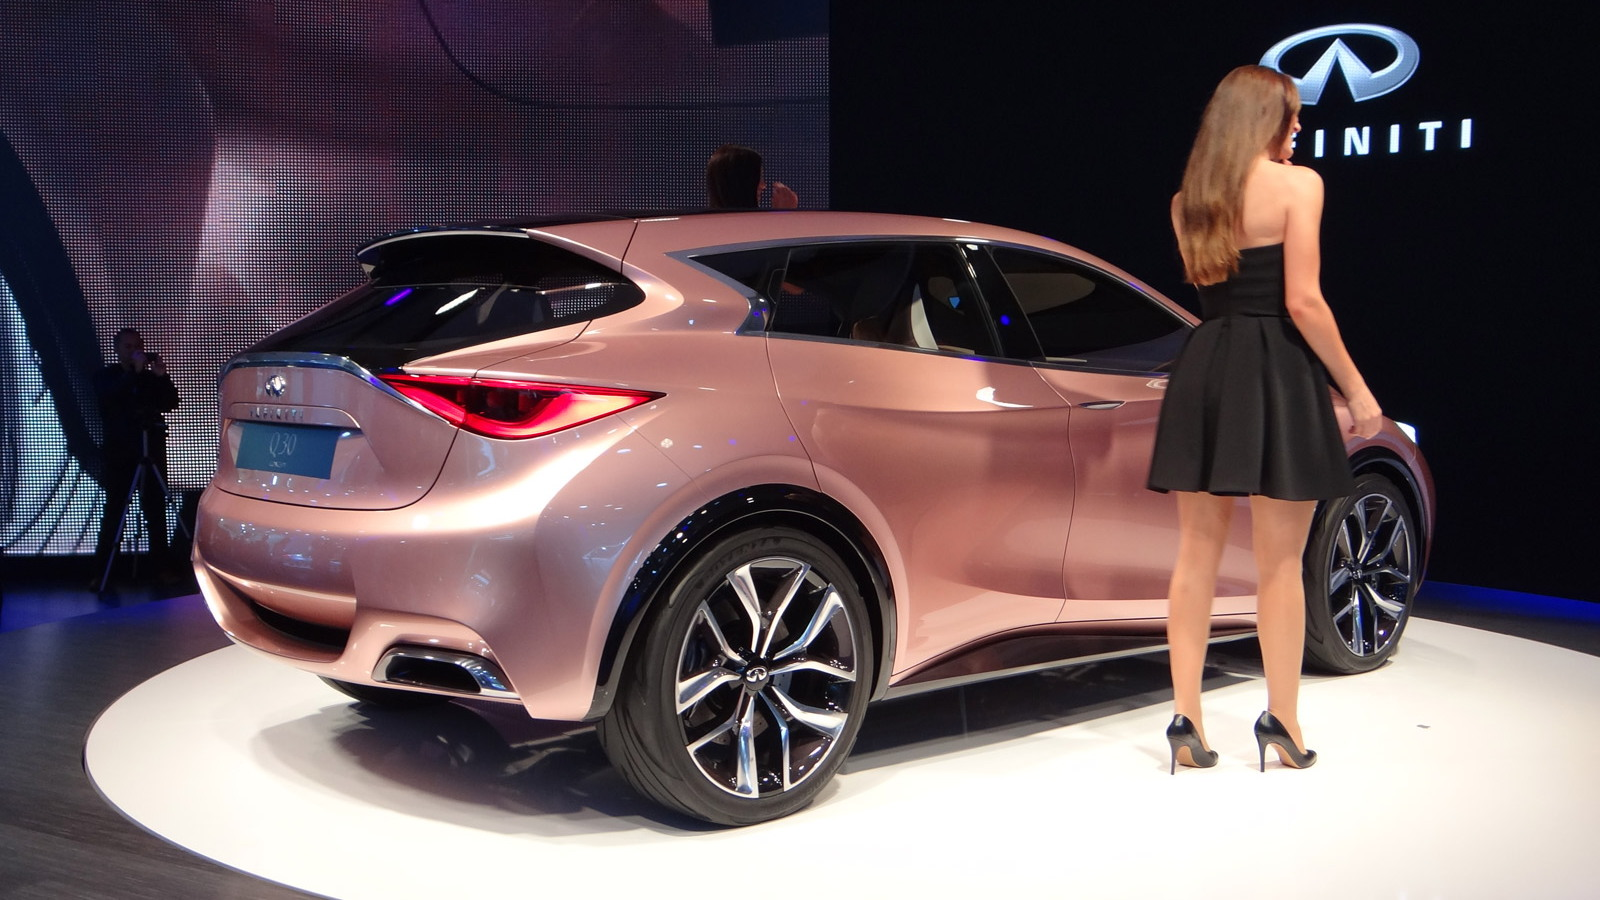 2017 Infiniti Q30 Video: 'Lust And Logic' In Compact